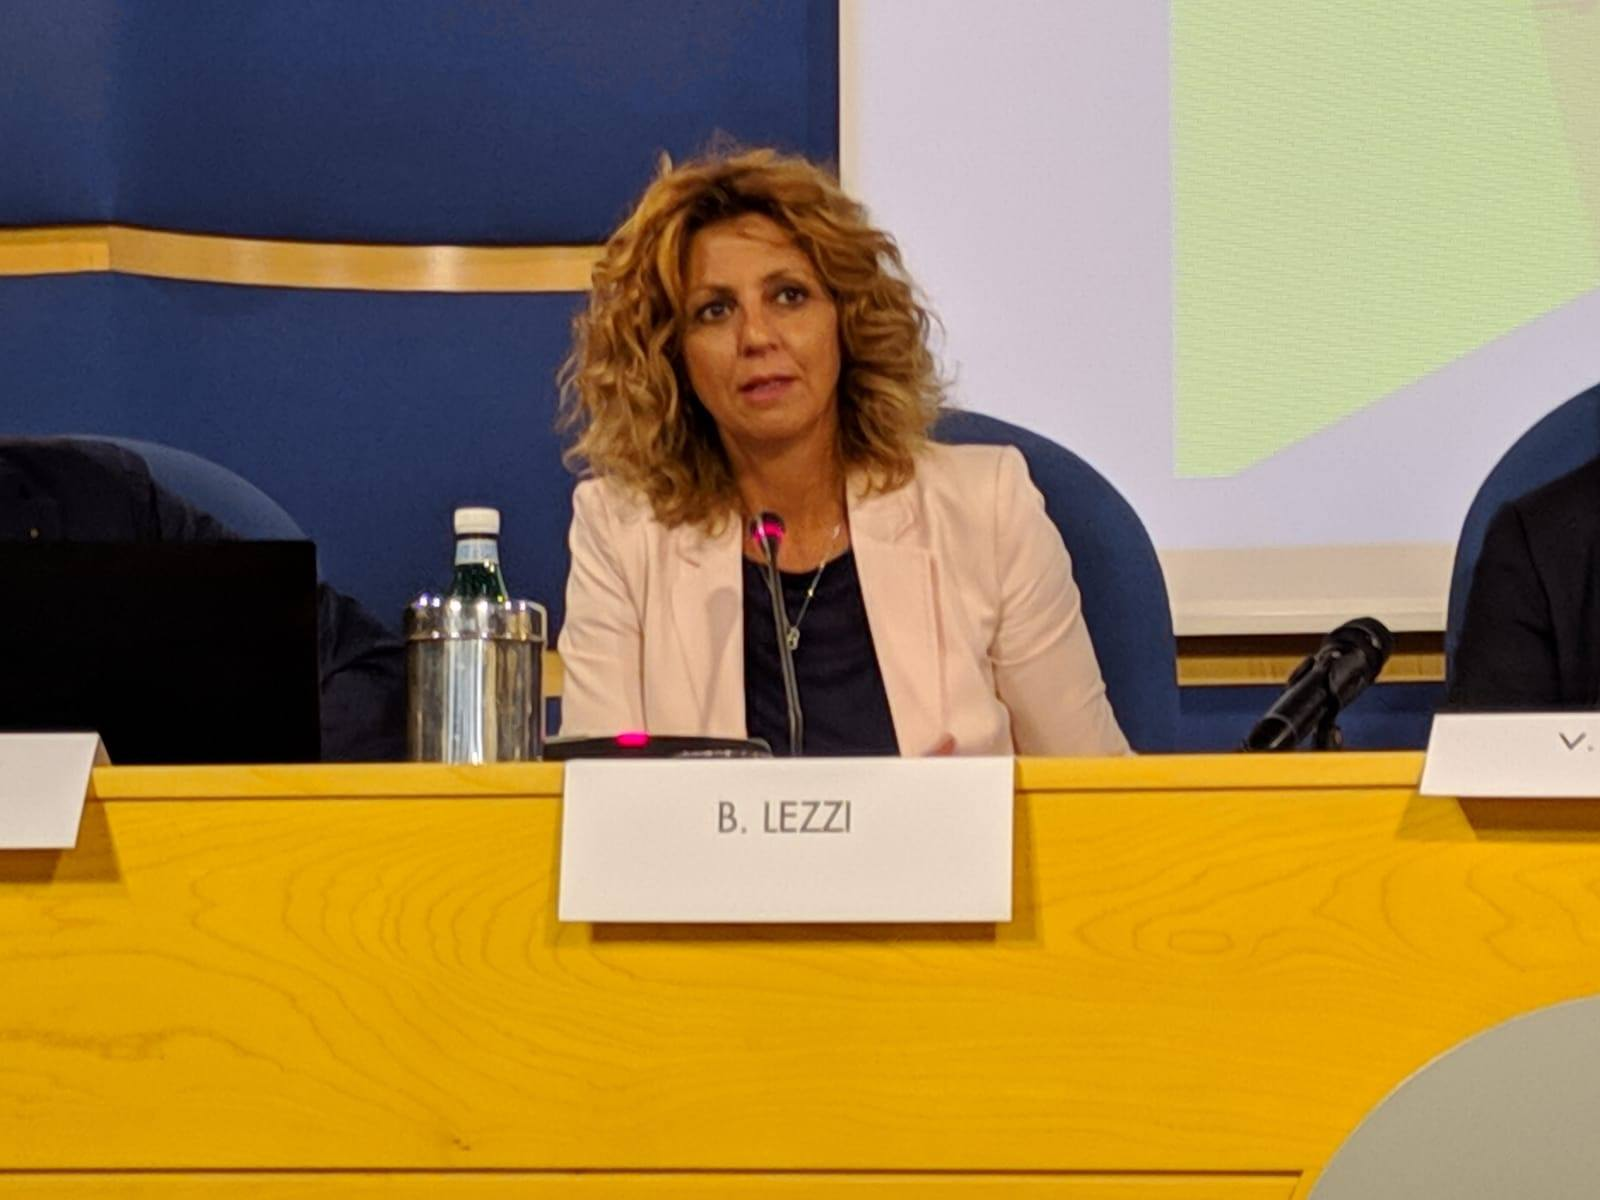 file/ELEMENTO_NEWSLETTER/20052/Lezzi_Barbara_20190720.jpg